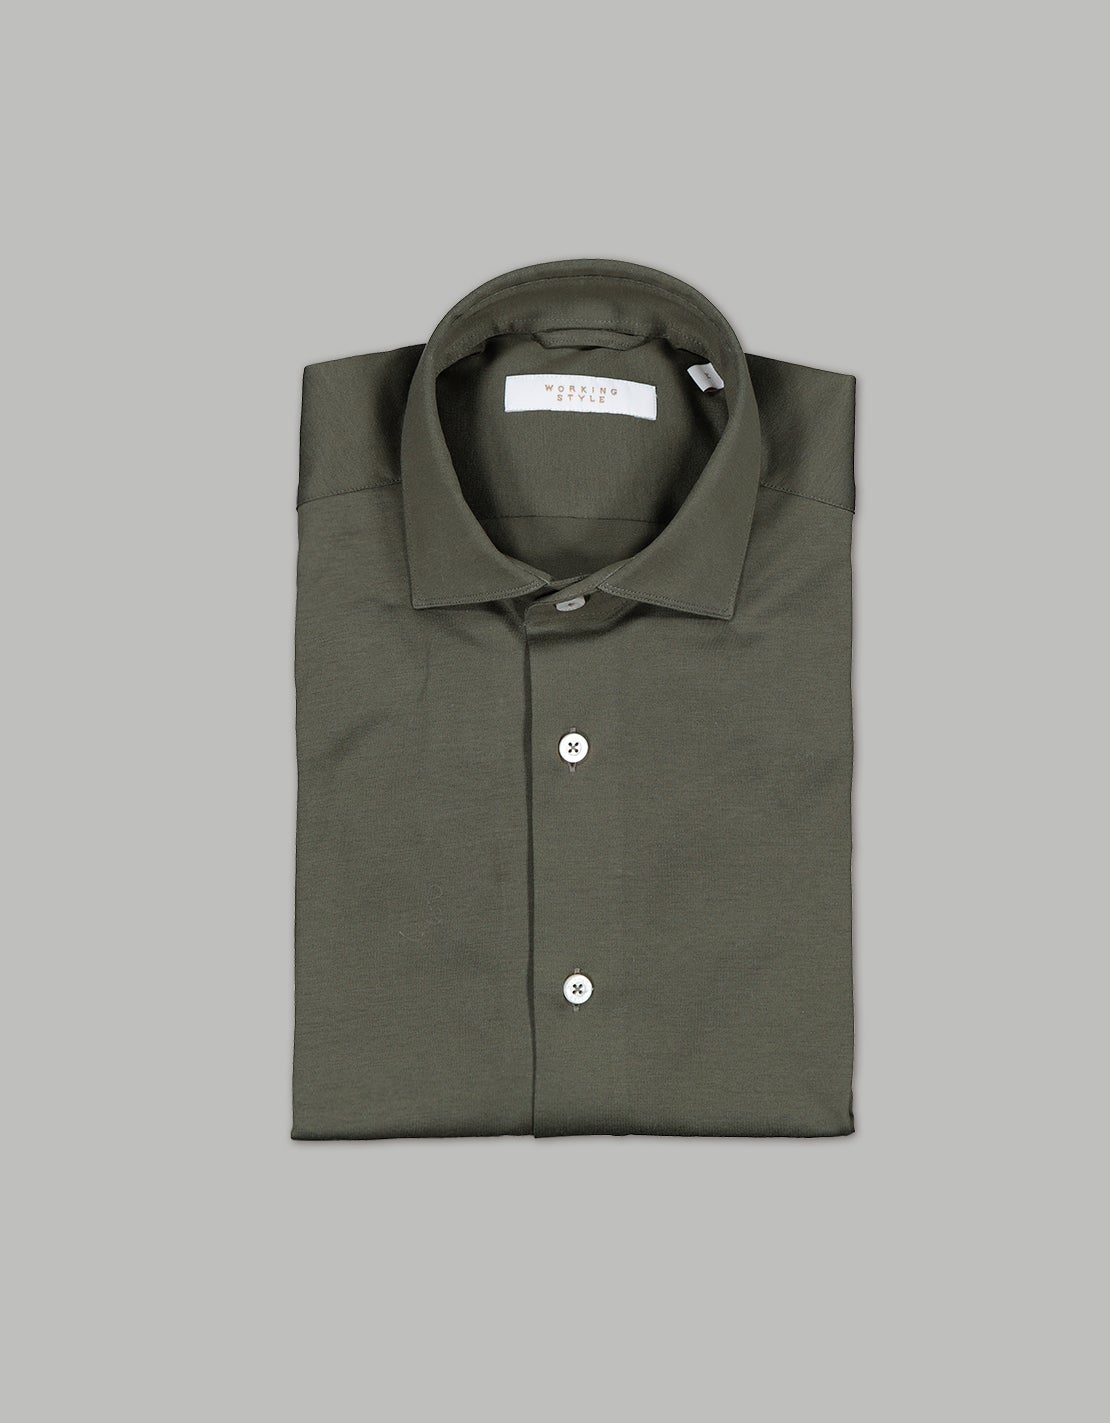 Olive Green Knitted Shirt